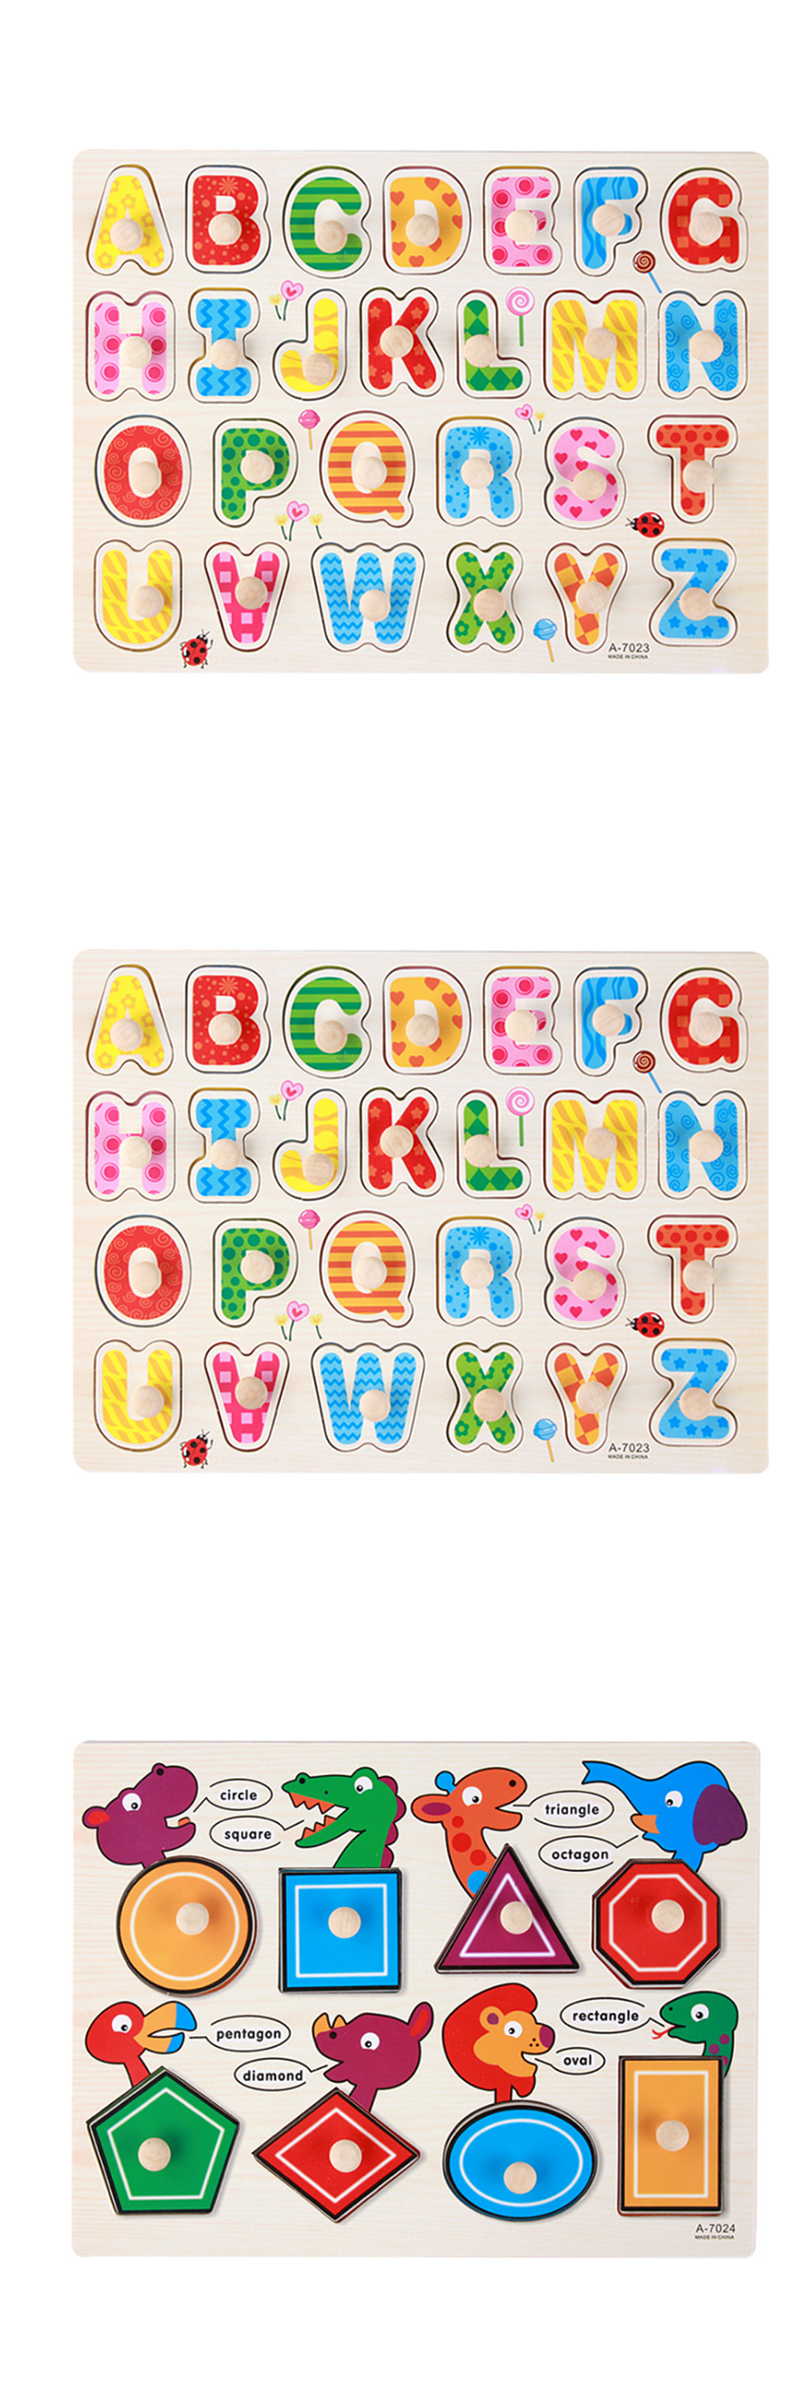 Little B House 1 pcs Preschool Educational Wood Puzzle - Alphabet & Mathematics -BKM38-C-Numbers